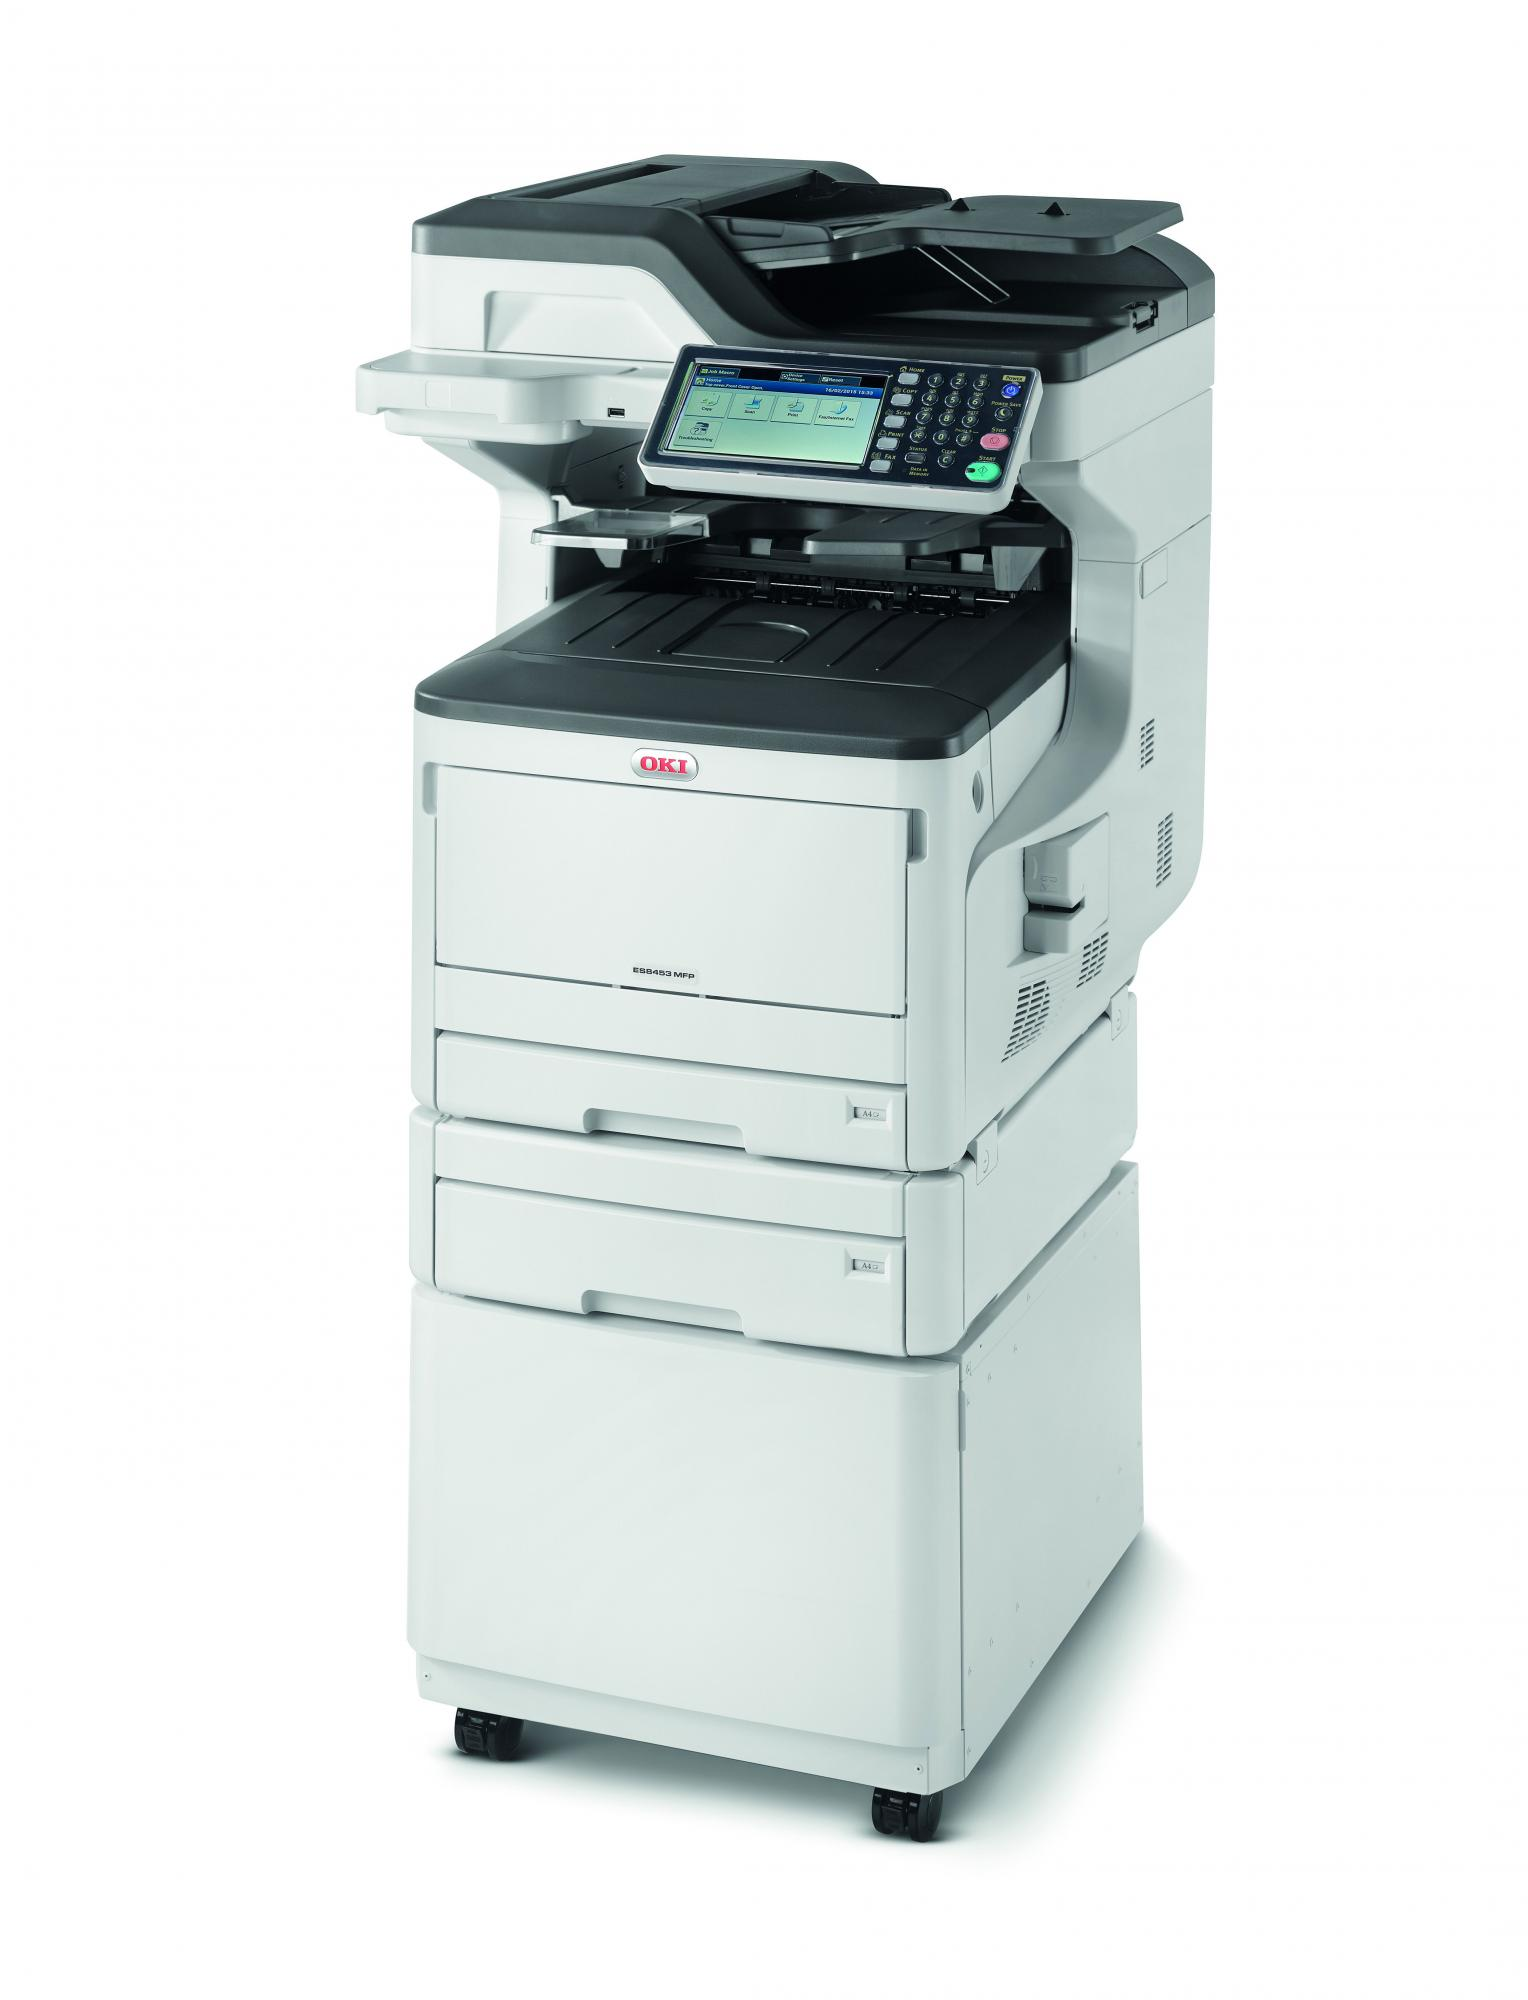 OKI ES8473dnct The versatile smart MFP, simple to use and seamlessly integrated into document workflow